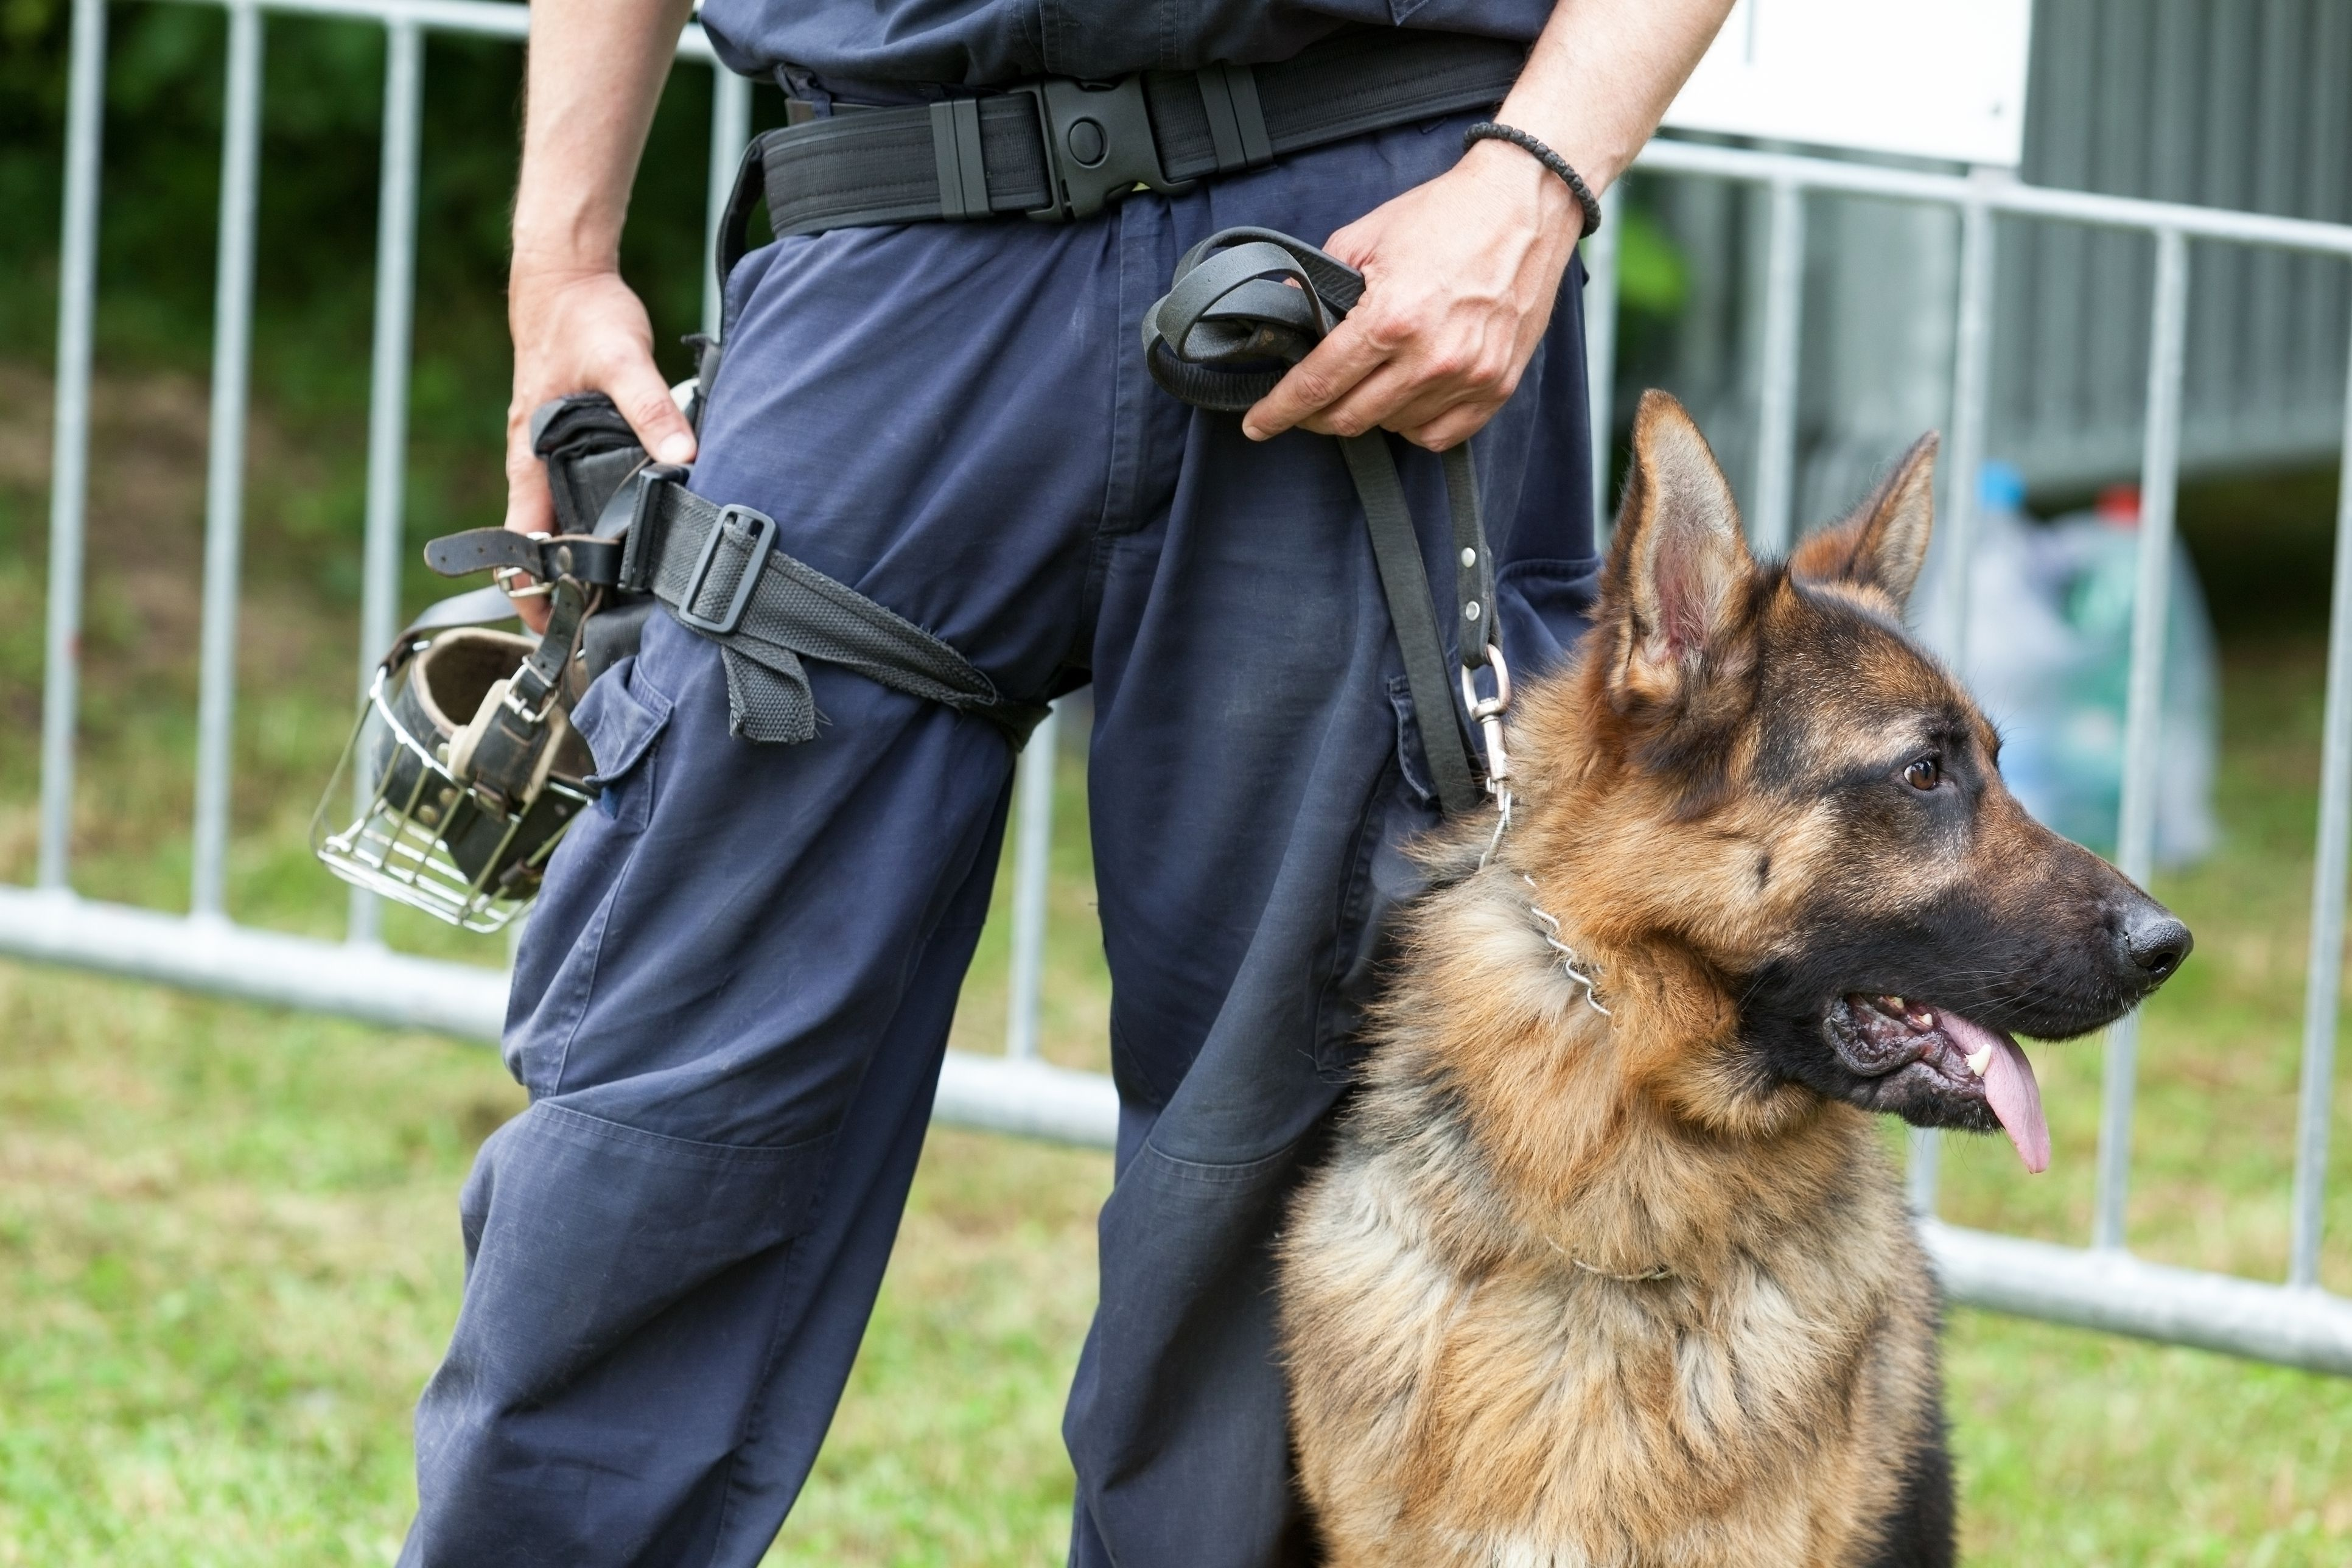 This Video of Dogs Being Trained to Intervene in School Shootings Is Highly Upsetting